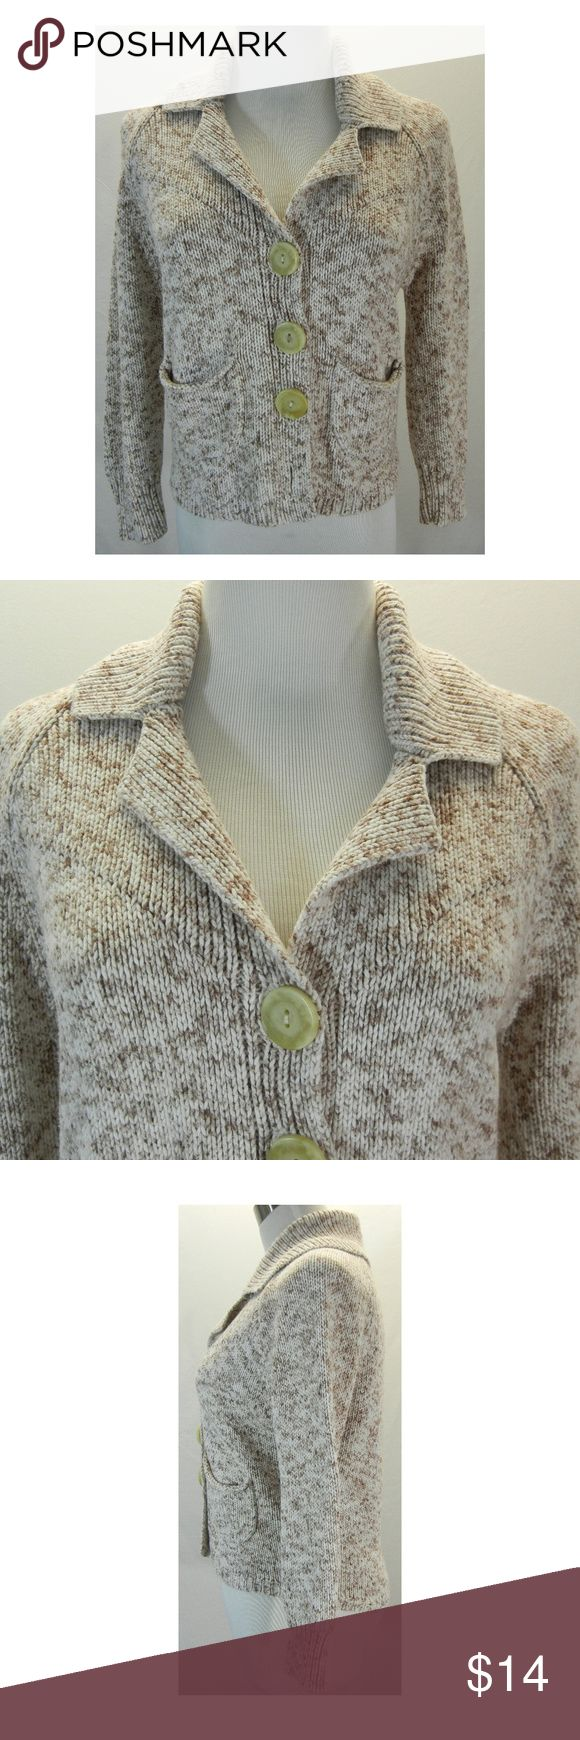 Hwr anthropologie marled cropped cardigan sweater